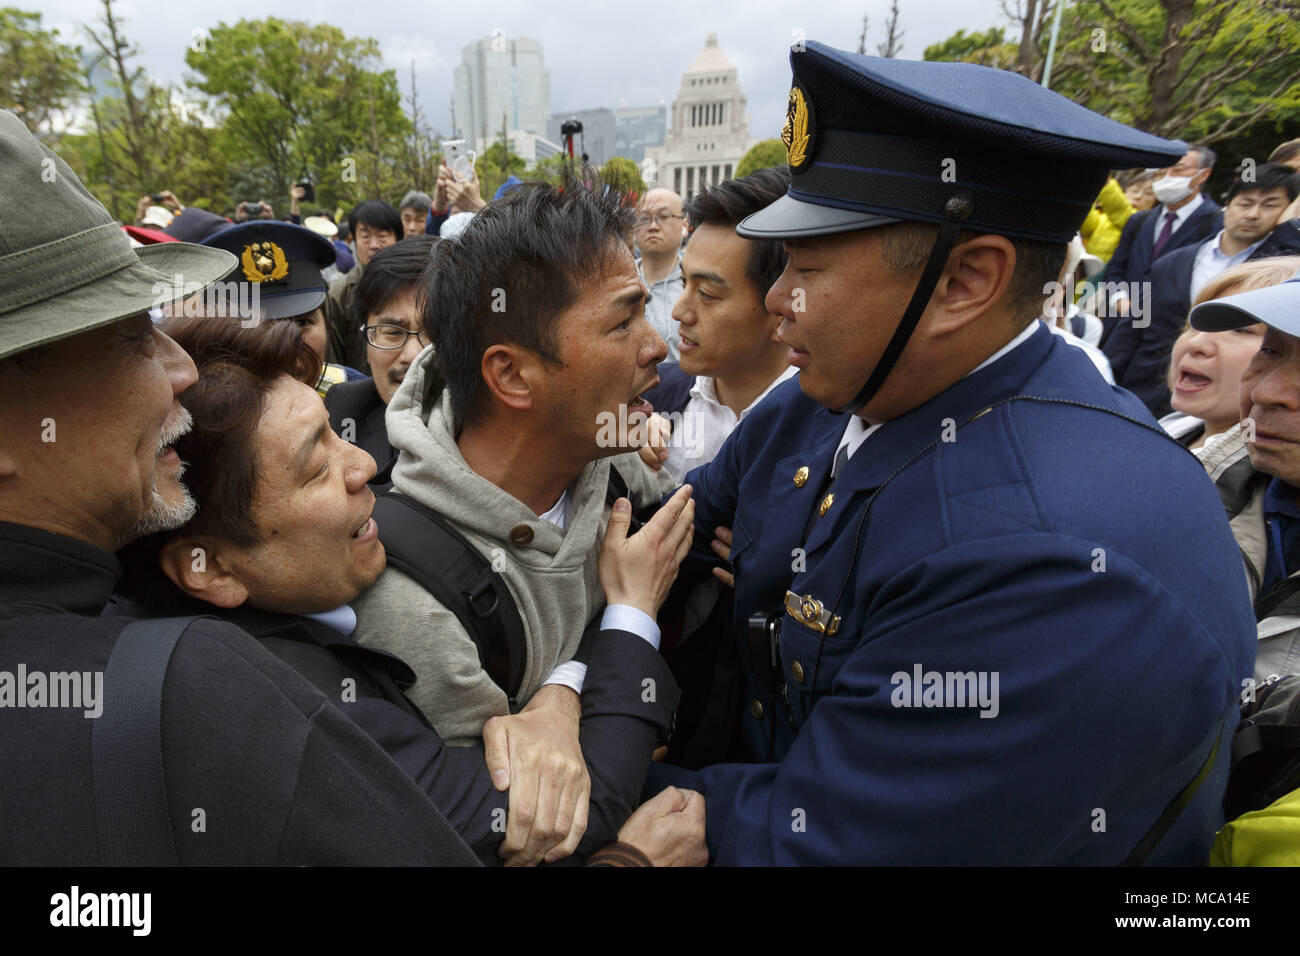 Tokyo, Japan. 14th Apr, 2018. Anti-Abe protesters clash with police during a protest in front of the National Diet Building in Tokyo, Japan. Organizers claim about 30,000 protesters joined the rally demanding Abe's resignation for the Moritomo Gakuen and Kake Gakuen scandals. Credit: Rodrigo Reyes Marin/via ZUMA Wire/ZUMA Wire/Alamy Live News - Stock Image